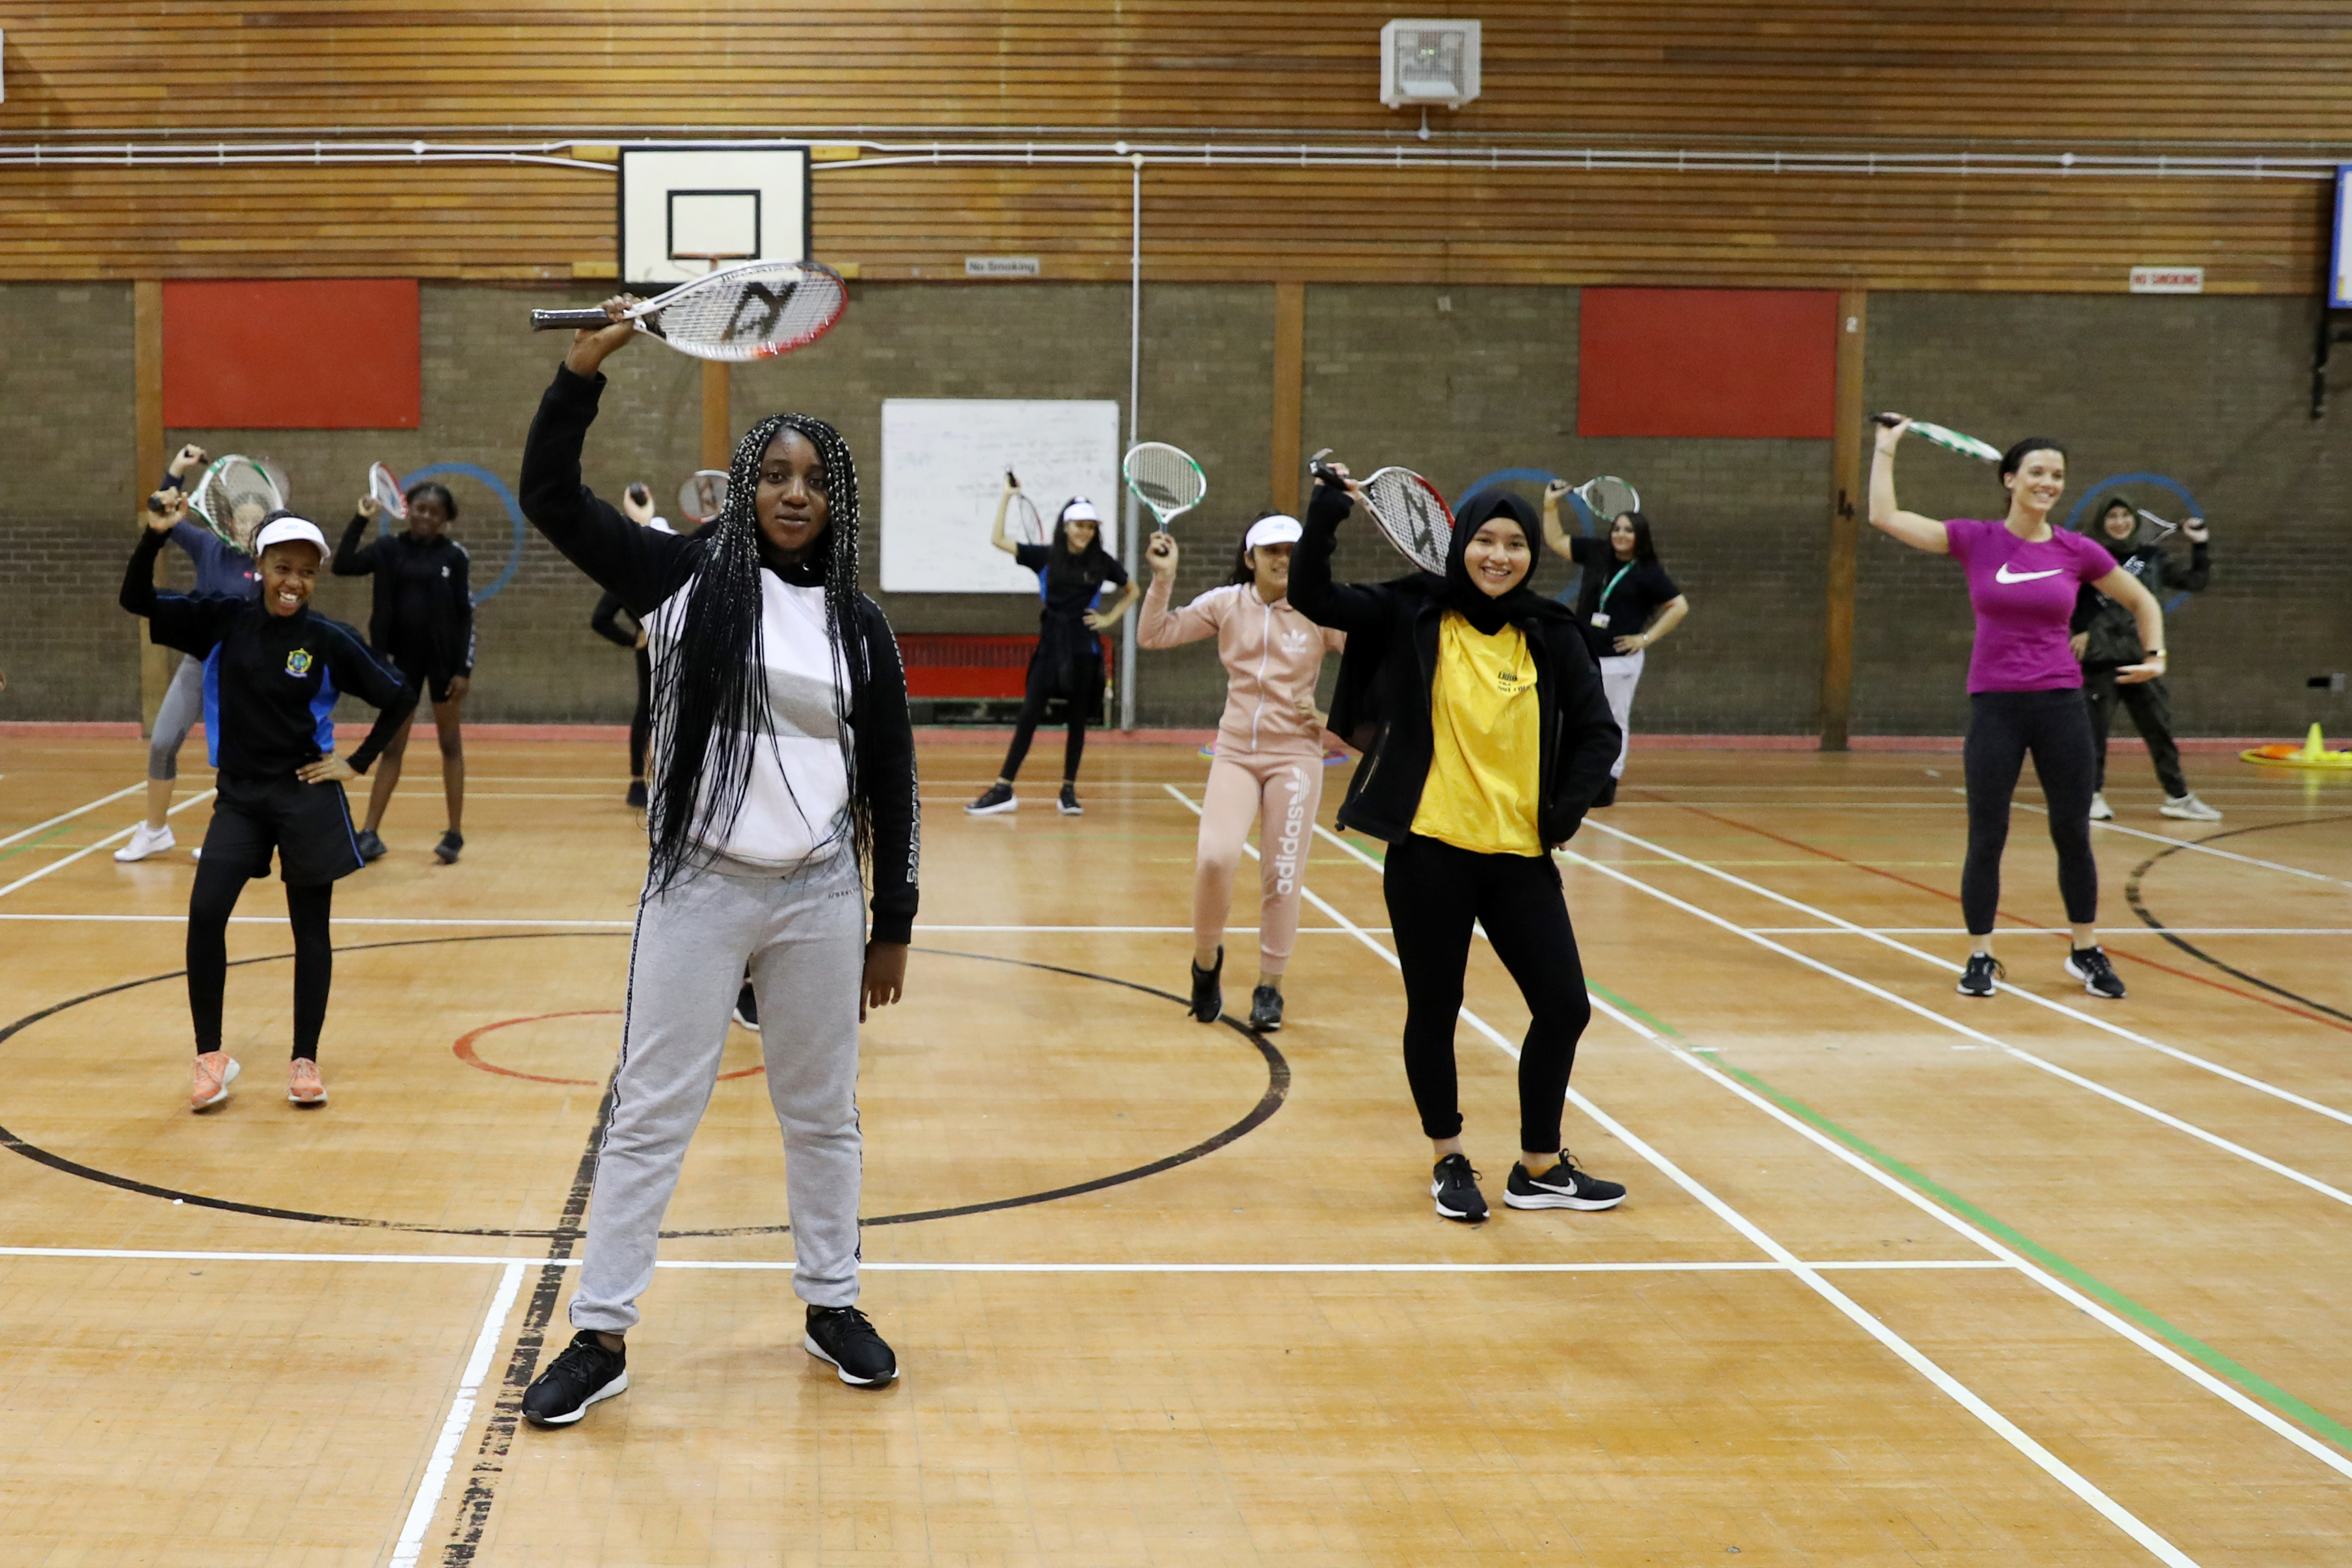 Women and girls take part in a She Rallies/SERVES workshop